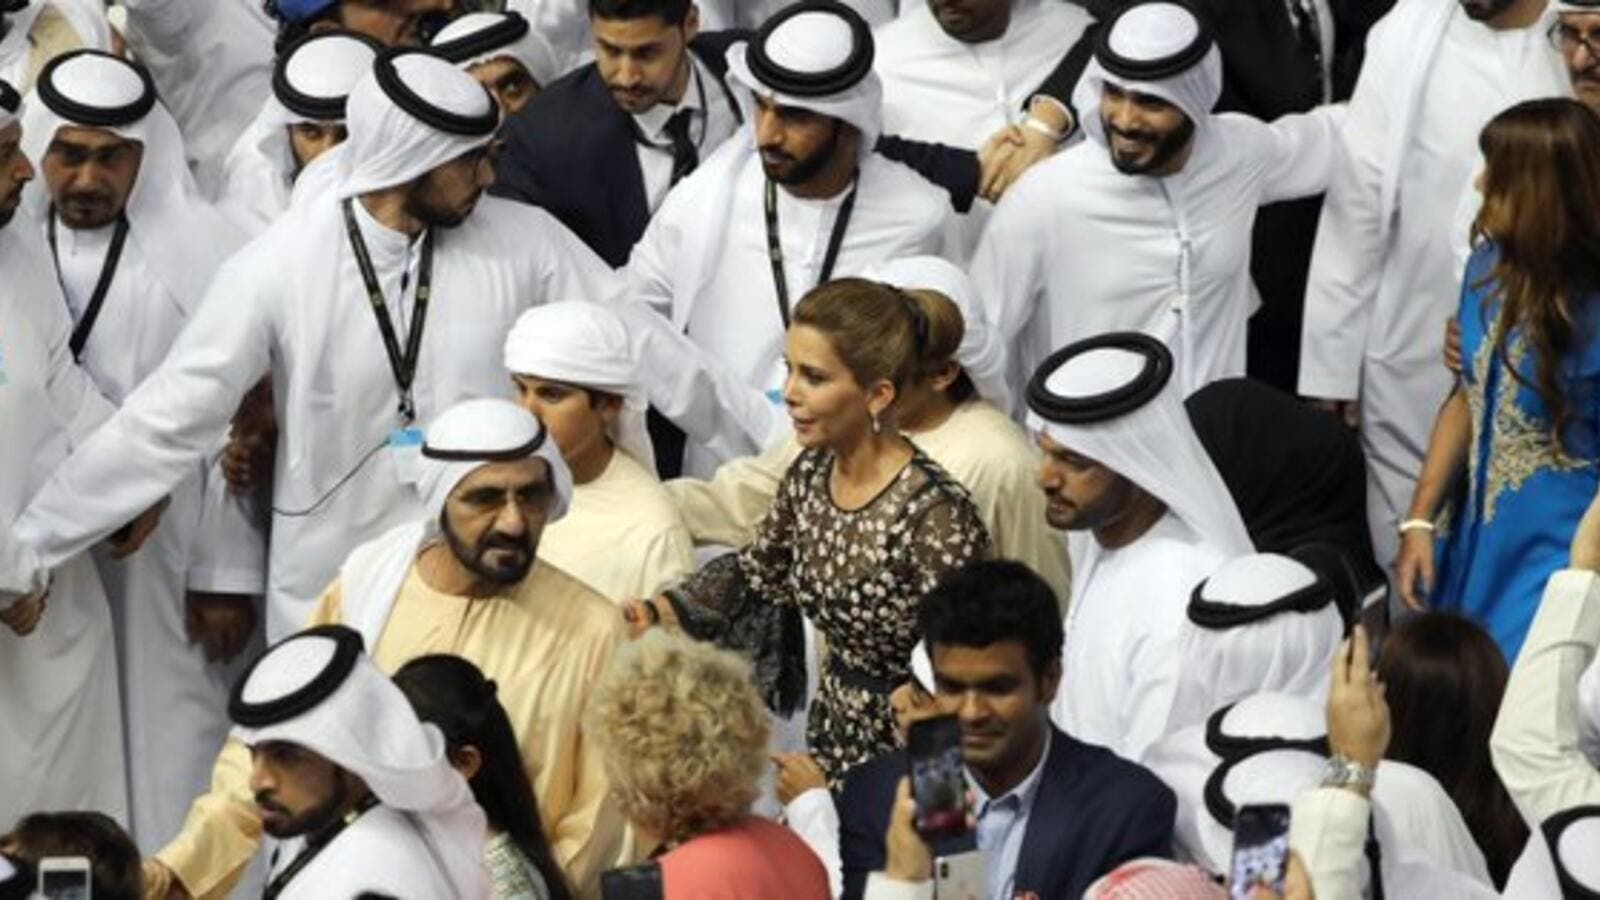 Dubai Ruler Suspects that Princess Haya Might Had 'Inappropriate Contact' with her Bodyguard  (Twitter)